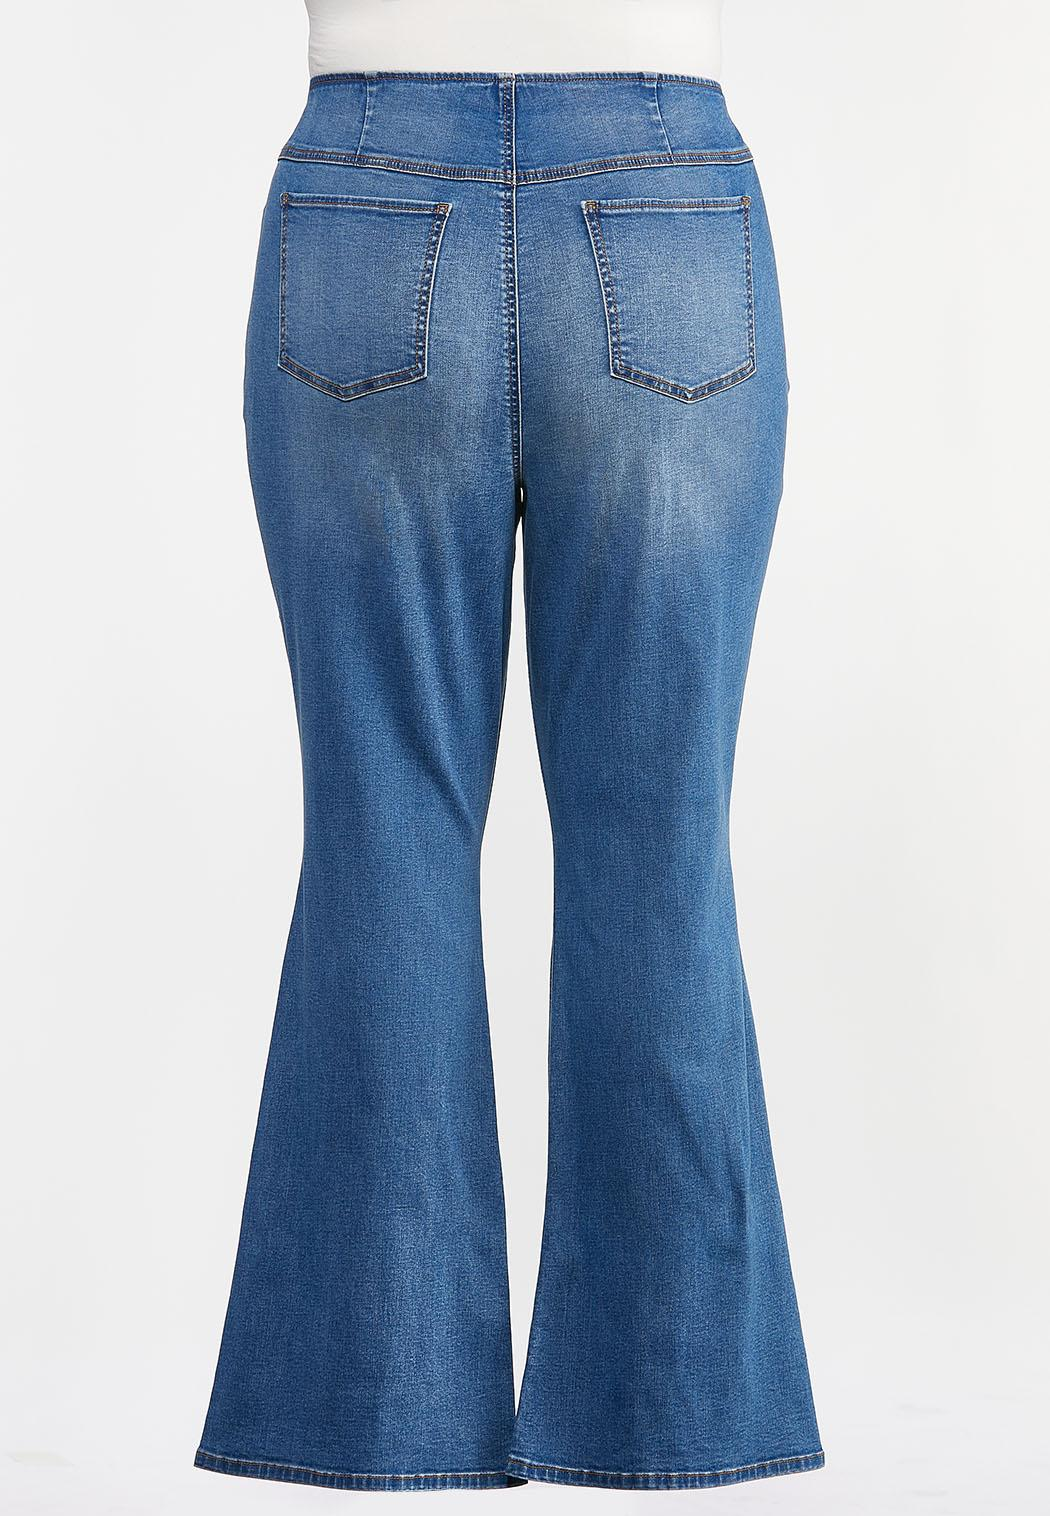 Plus Size Pull-On Flare Jeans (Item #44331951)